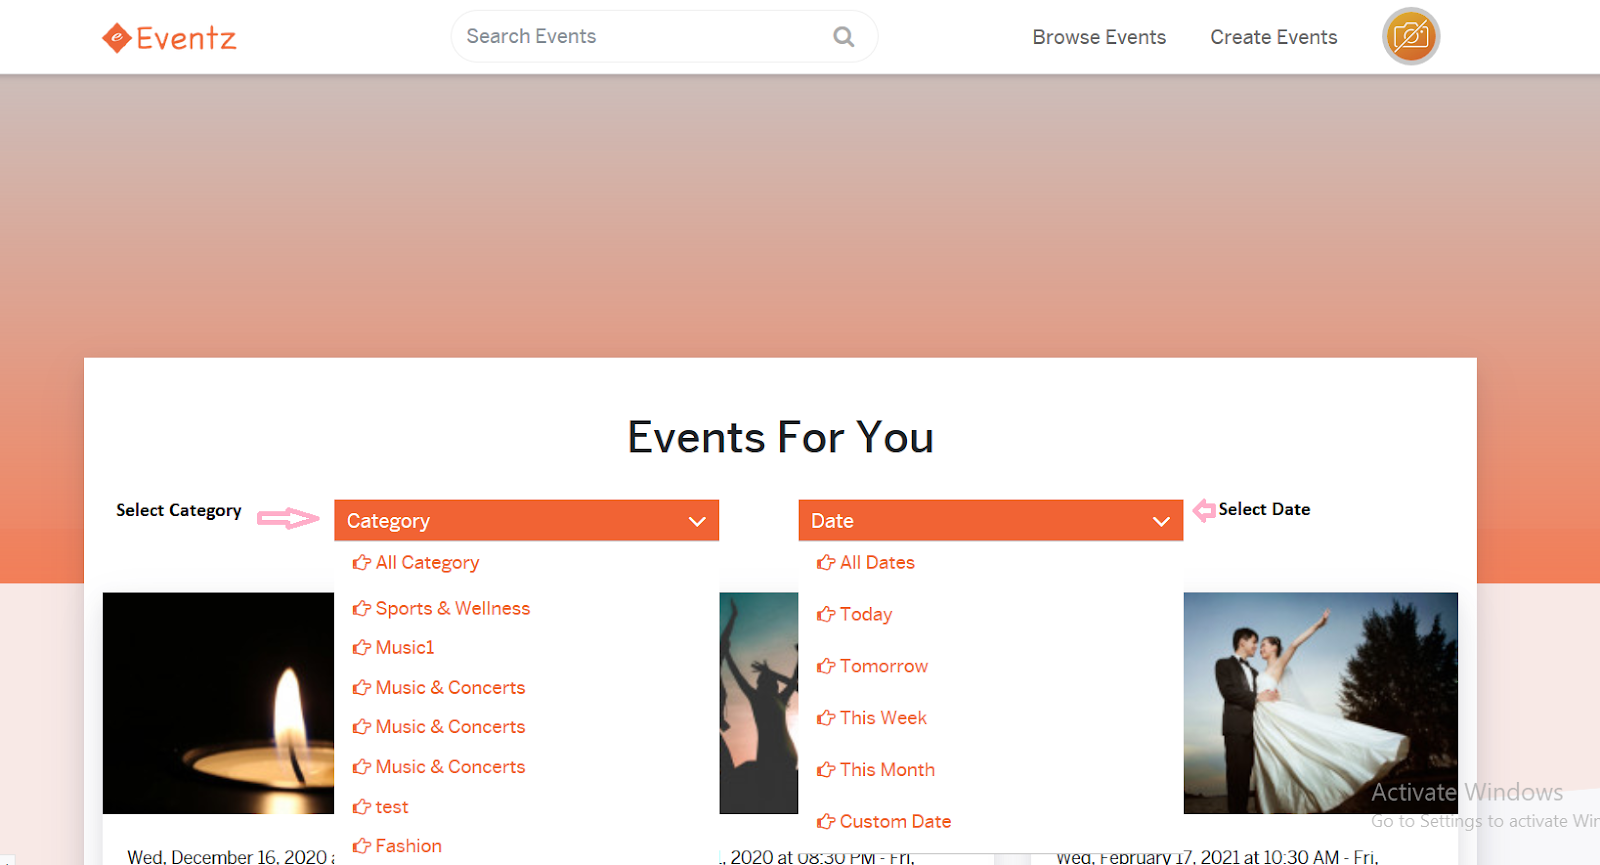 Browse Events